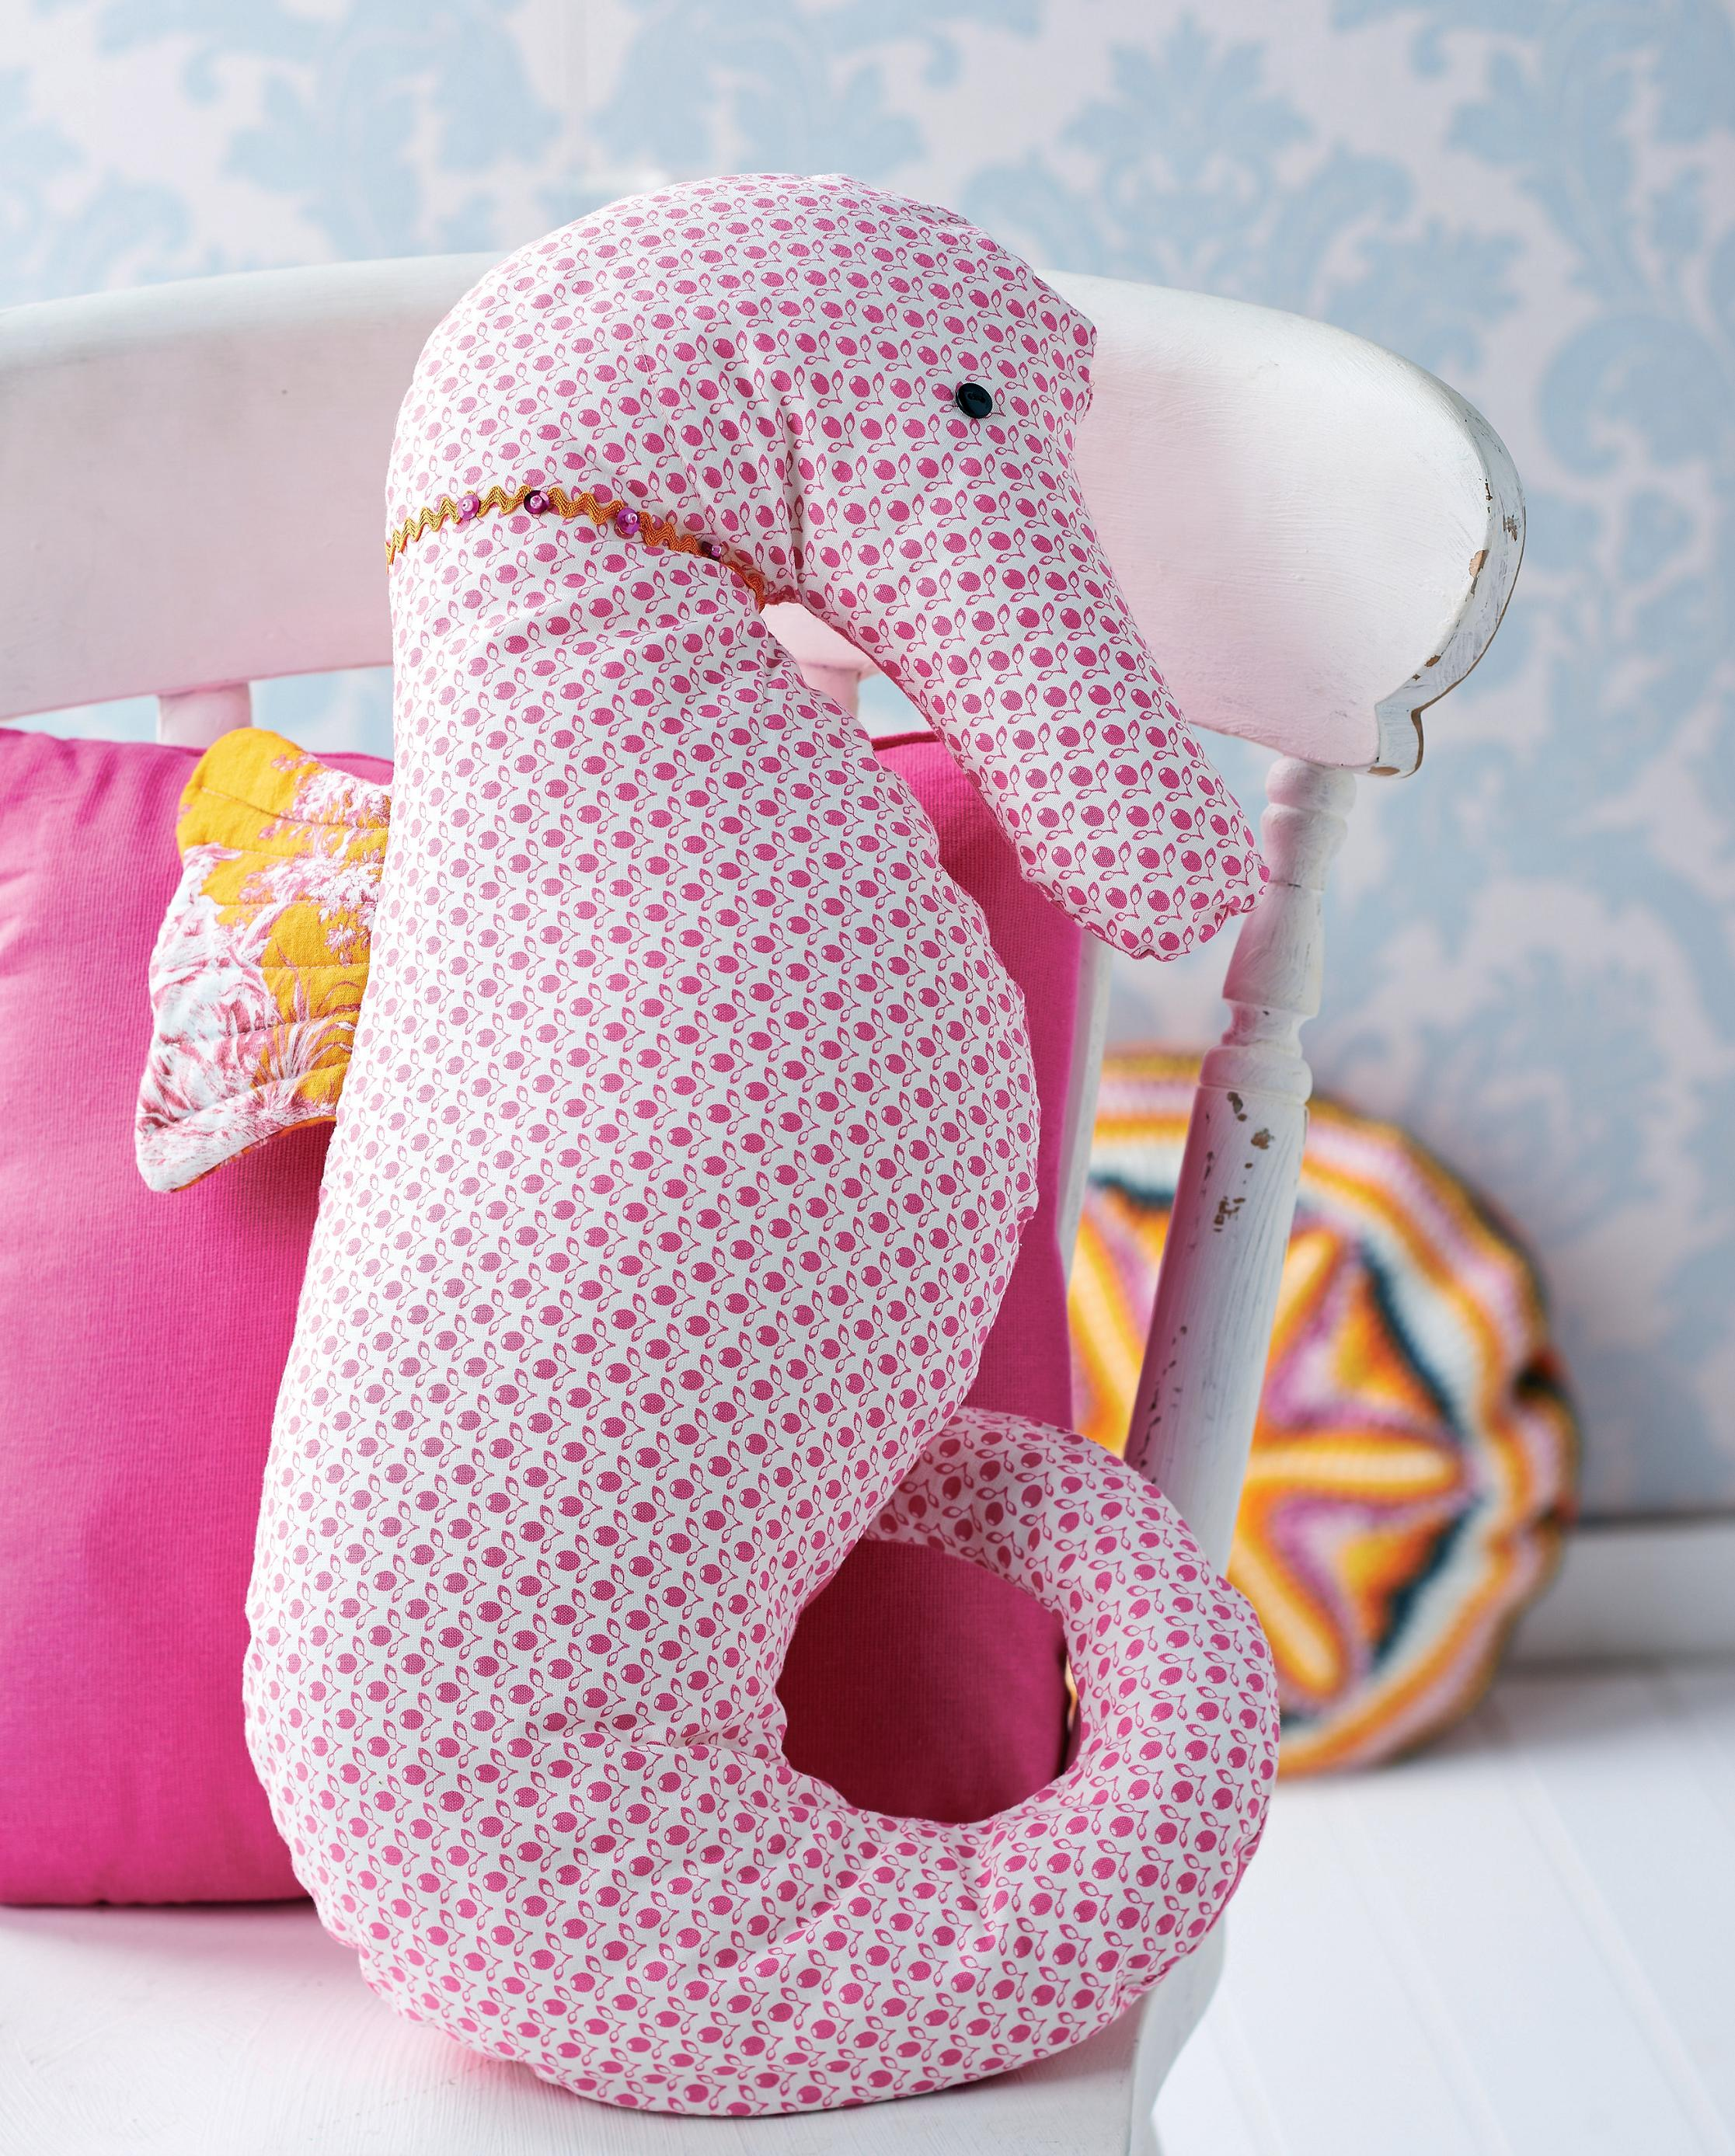 Seahorse cushion and hanging decoration free sewing patterns seahorse cushion and hanging decoration free sewing patterns sew magazine bankloansurffo Image collections